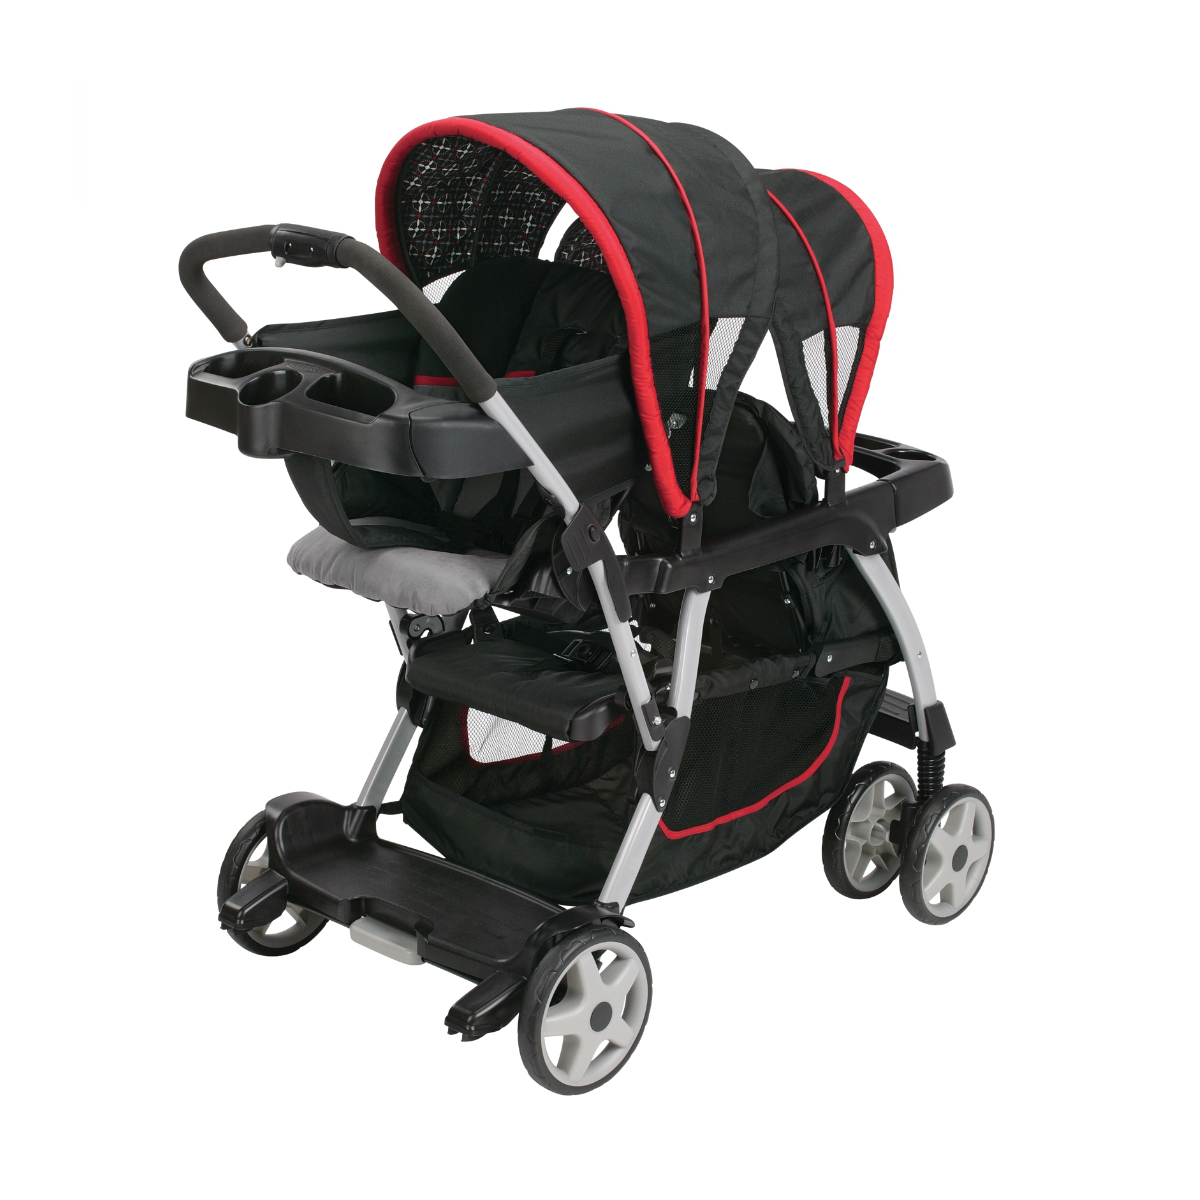 graco travel stroller instructions